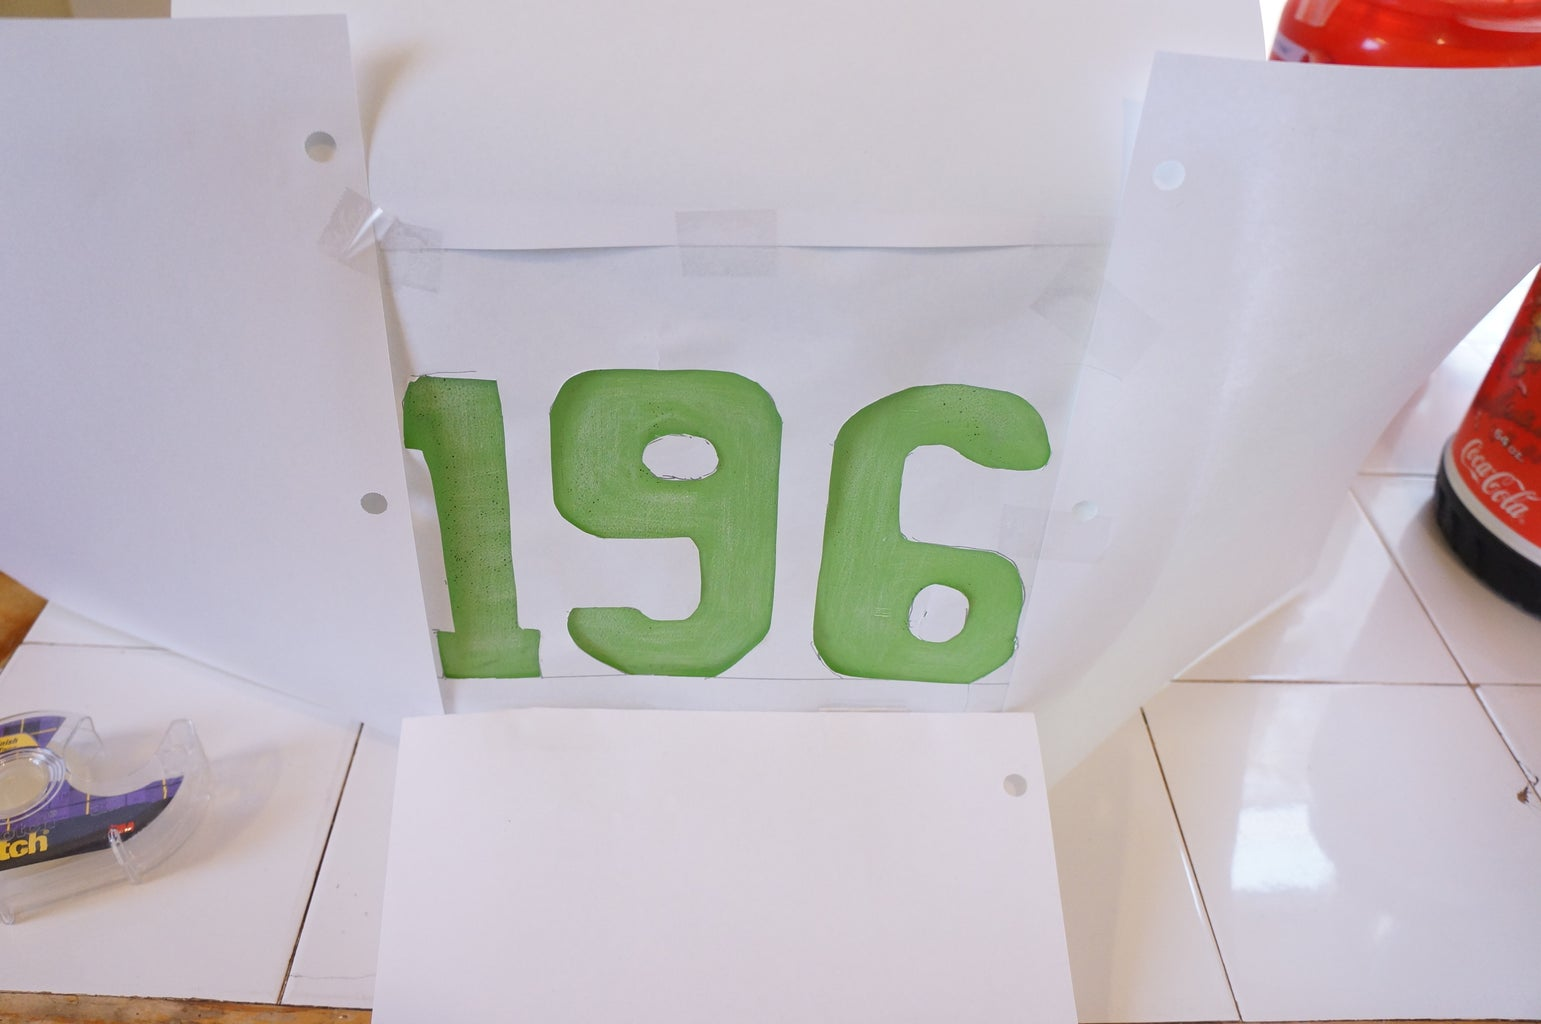 Tape the Address Numbers to the Jug